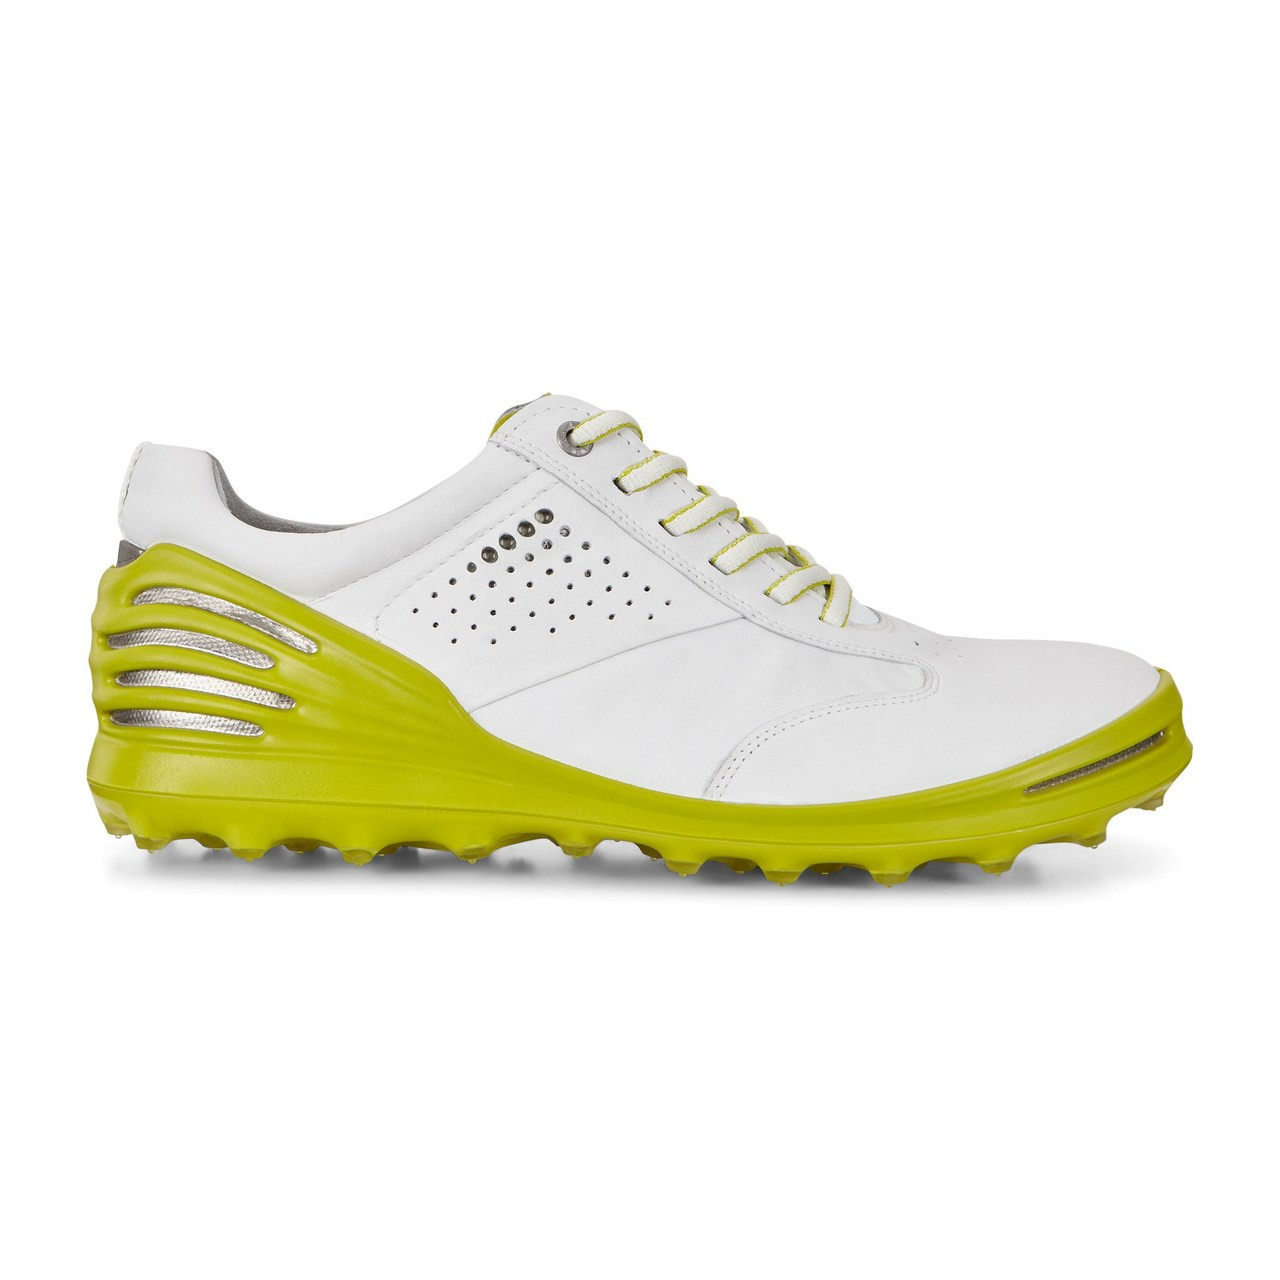 cheap for sale top quality coupon code Ecco Mens Cage Pro Golf Shoes white Kiwi Extra Width Option Size 43 (UK 9)